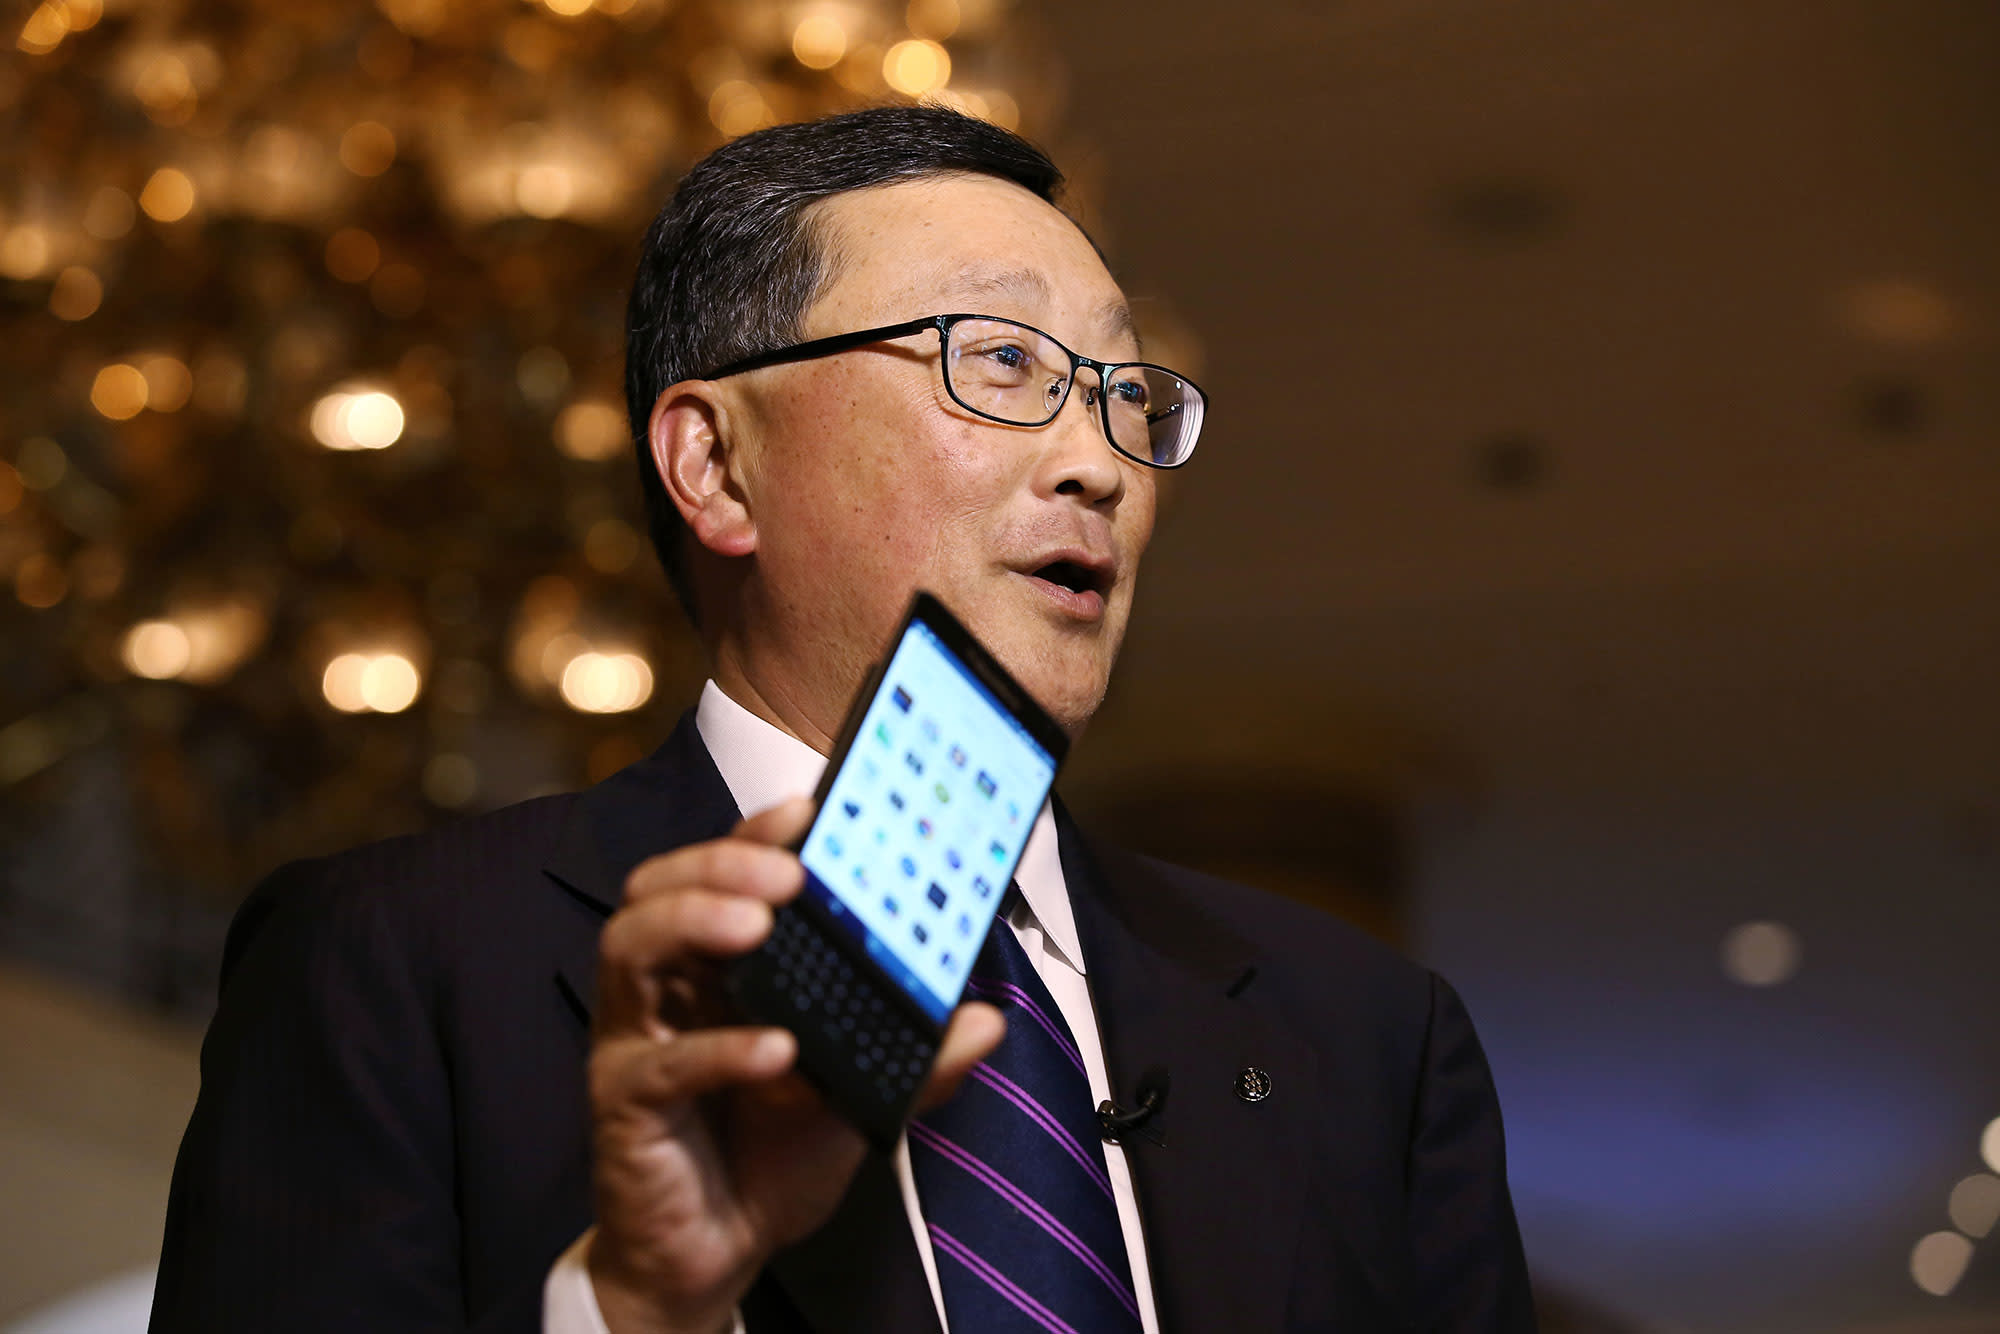 BlackBerry CEO says after near-death experience the mobile company's turnaround has hit tipping point